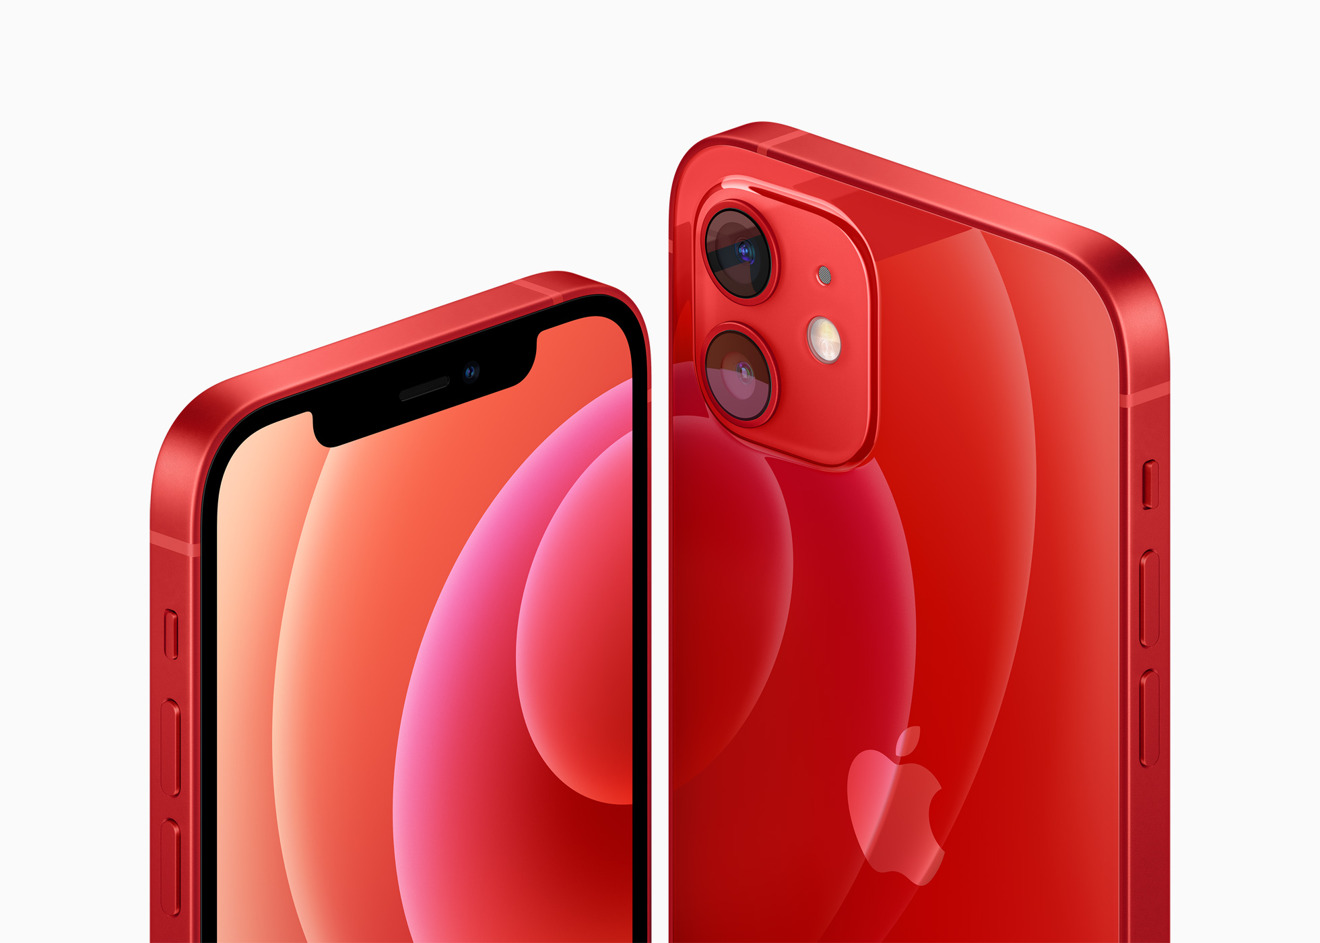 All models of iPhone 12 use the new flat-edged design